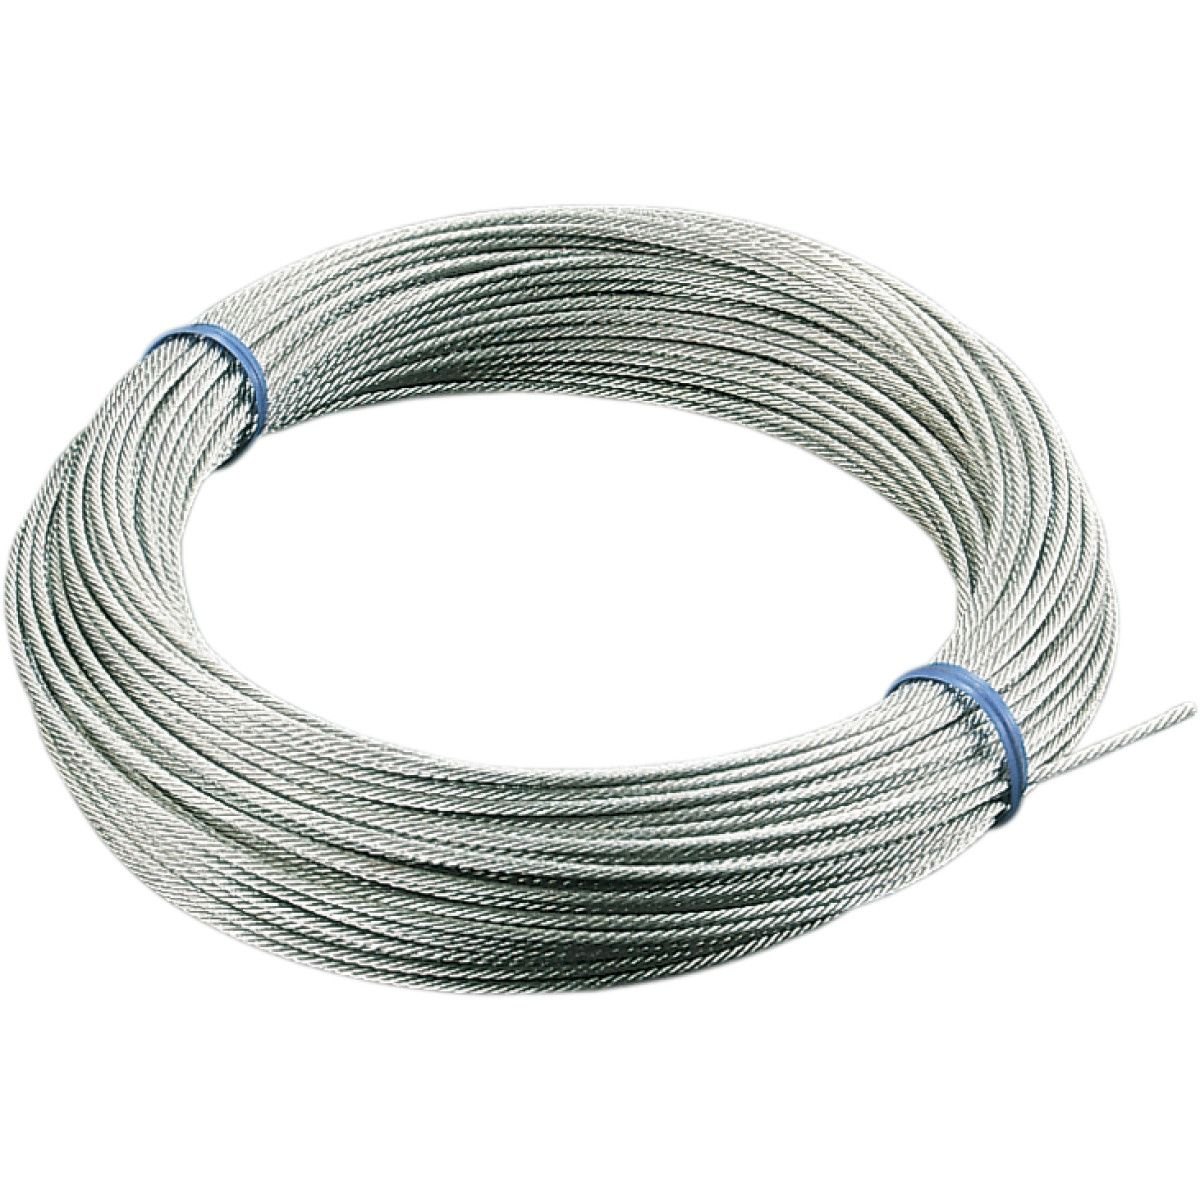 Stainless Steel Control Wire Bulk 2 5mm X 100 Ft 01 0102 32 25 Things To Sell Electronic Accessories Wire